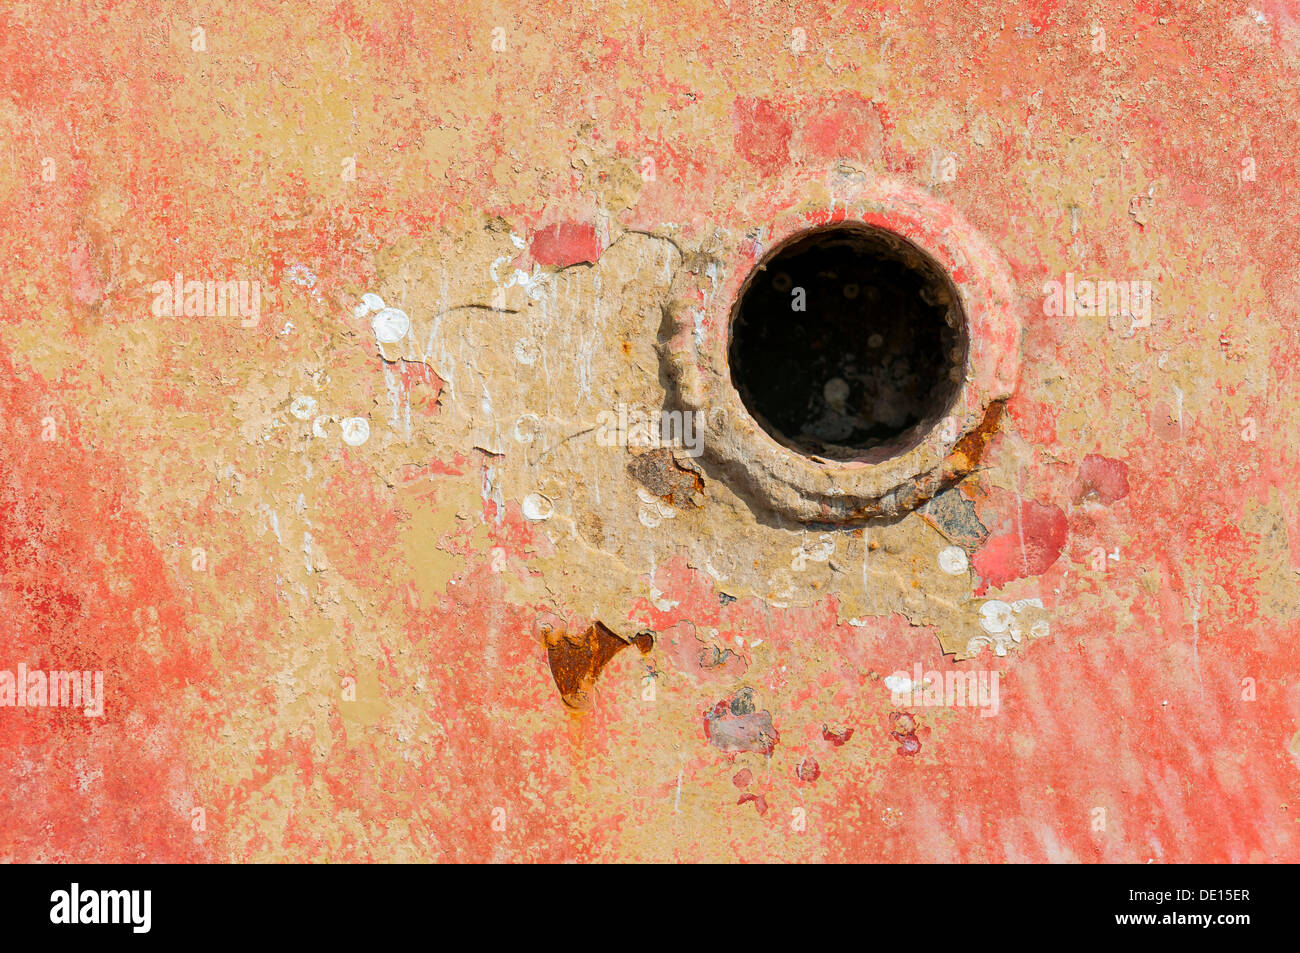 Plughole, paint coming off in flakes - Stock Image